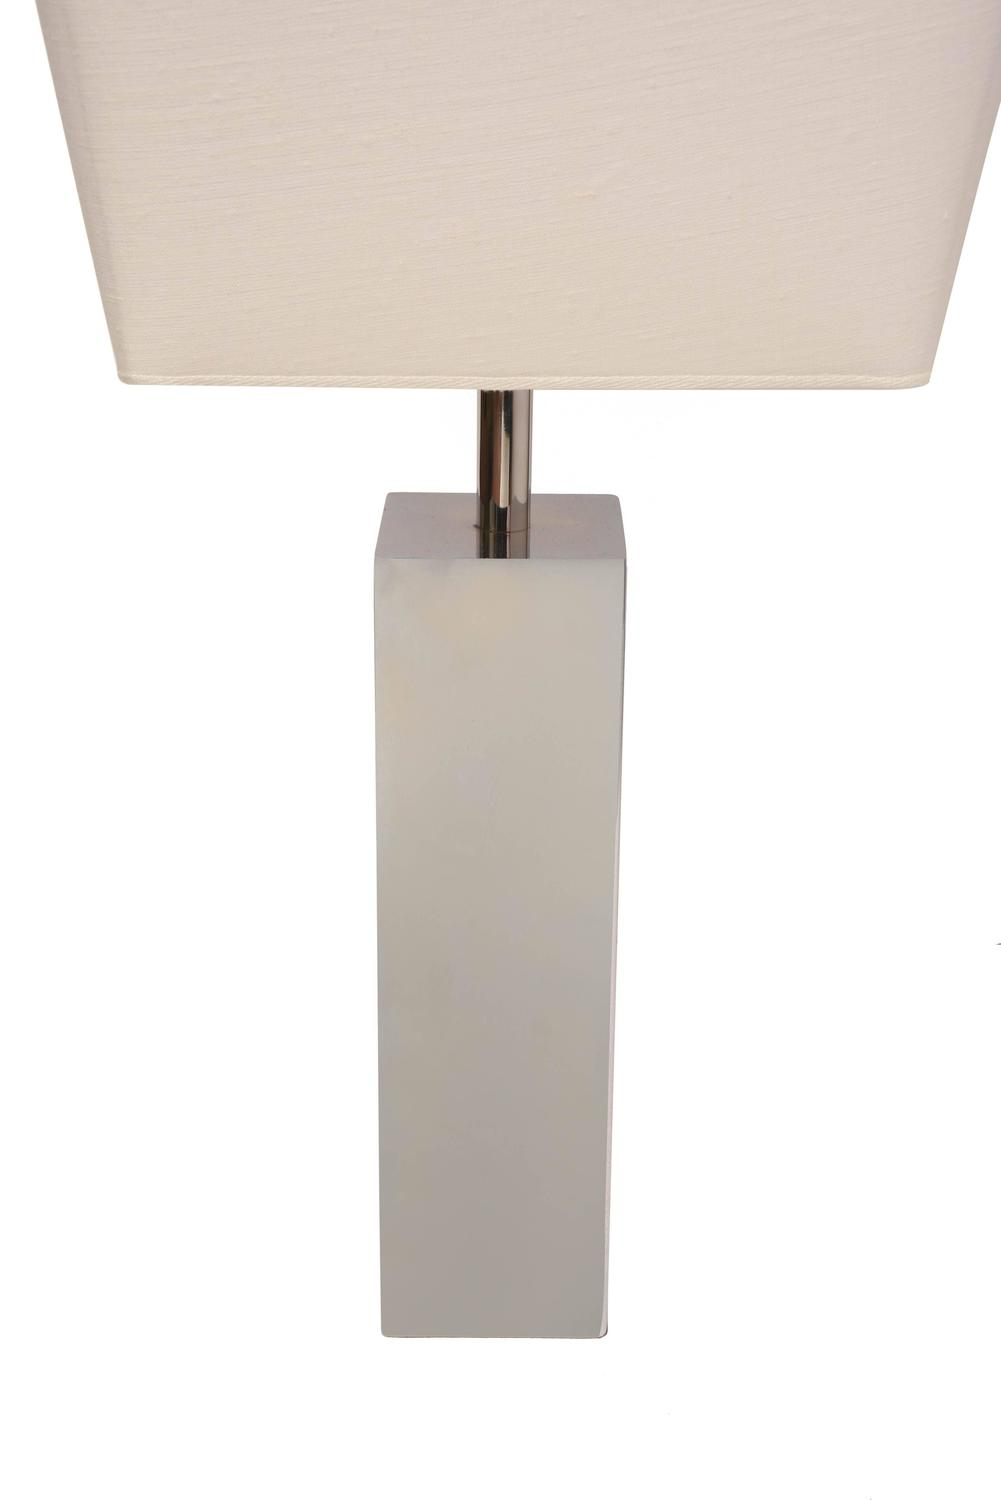 Pair Of Table Lamps By Reggiani For Sale At 1stdibs